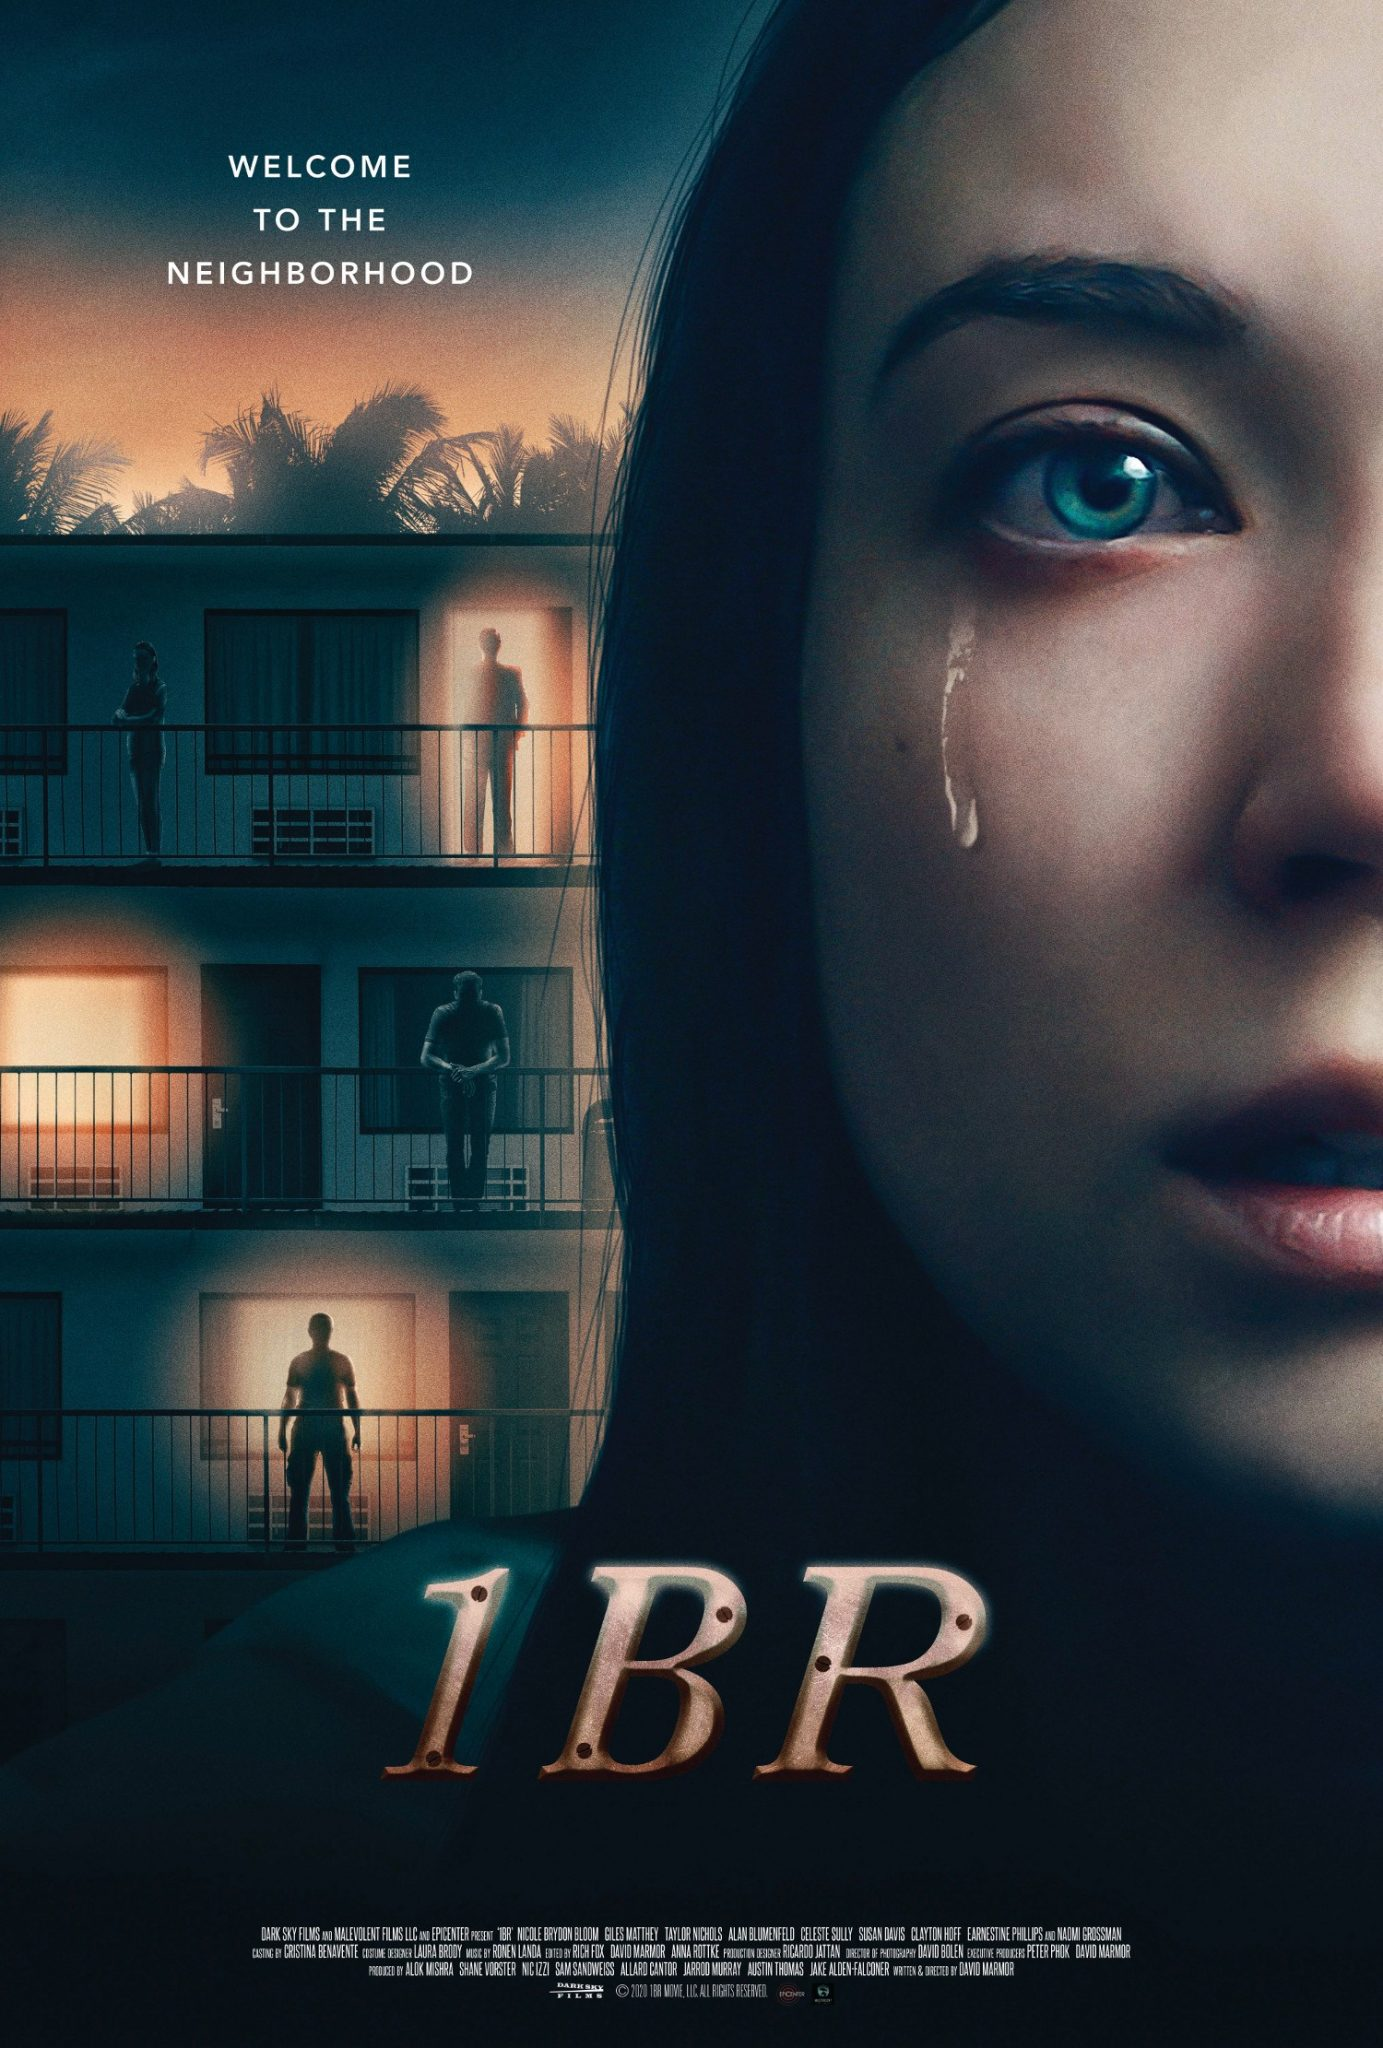 1br poster scaled